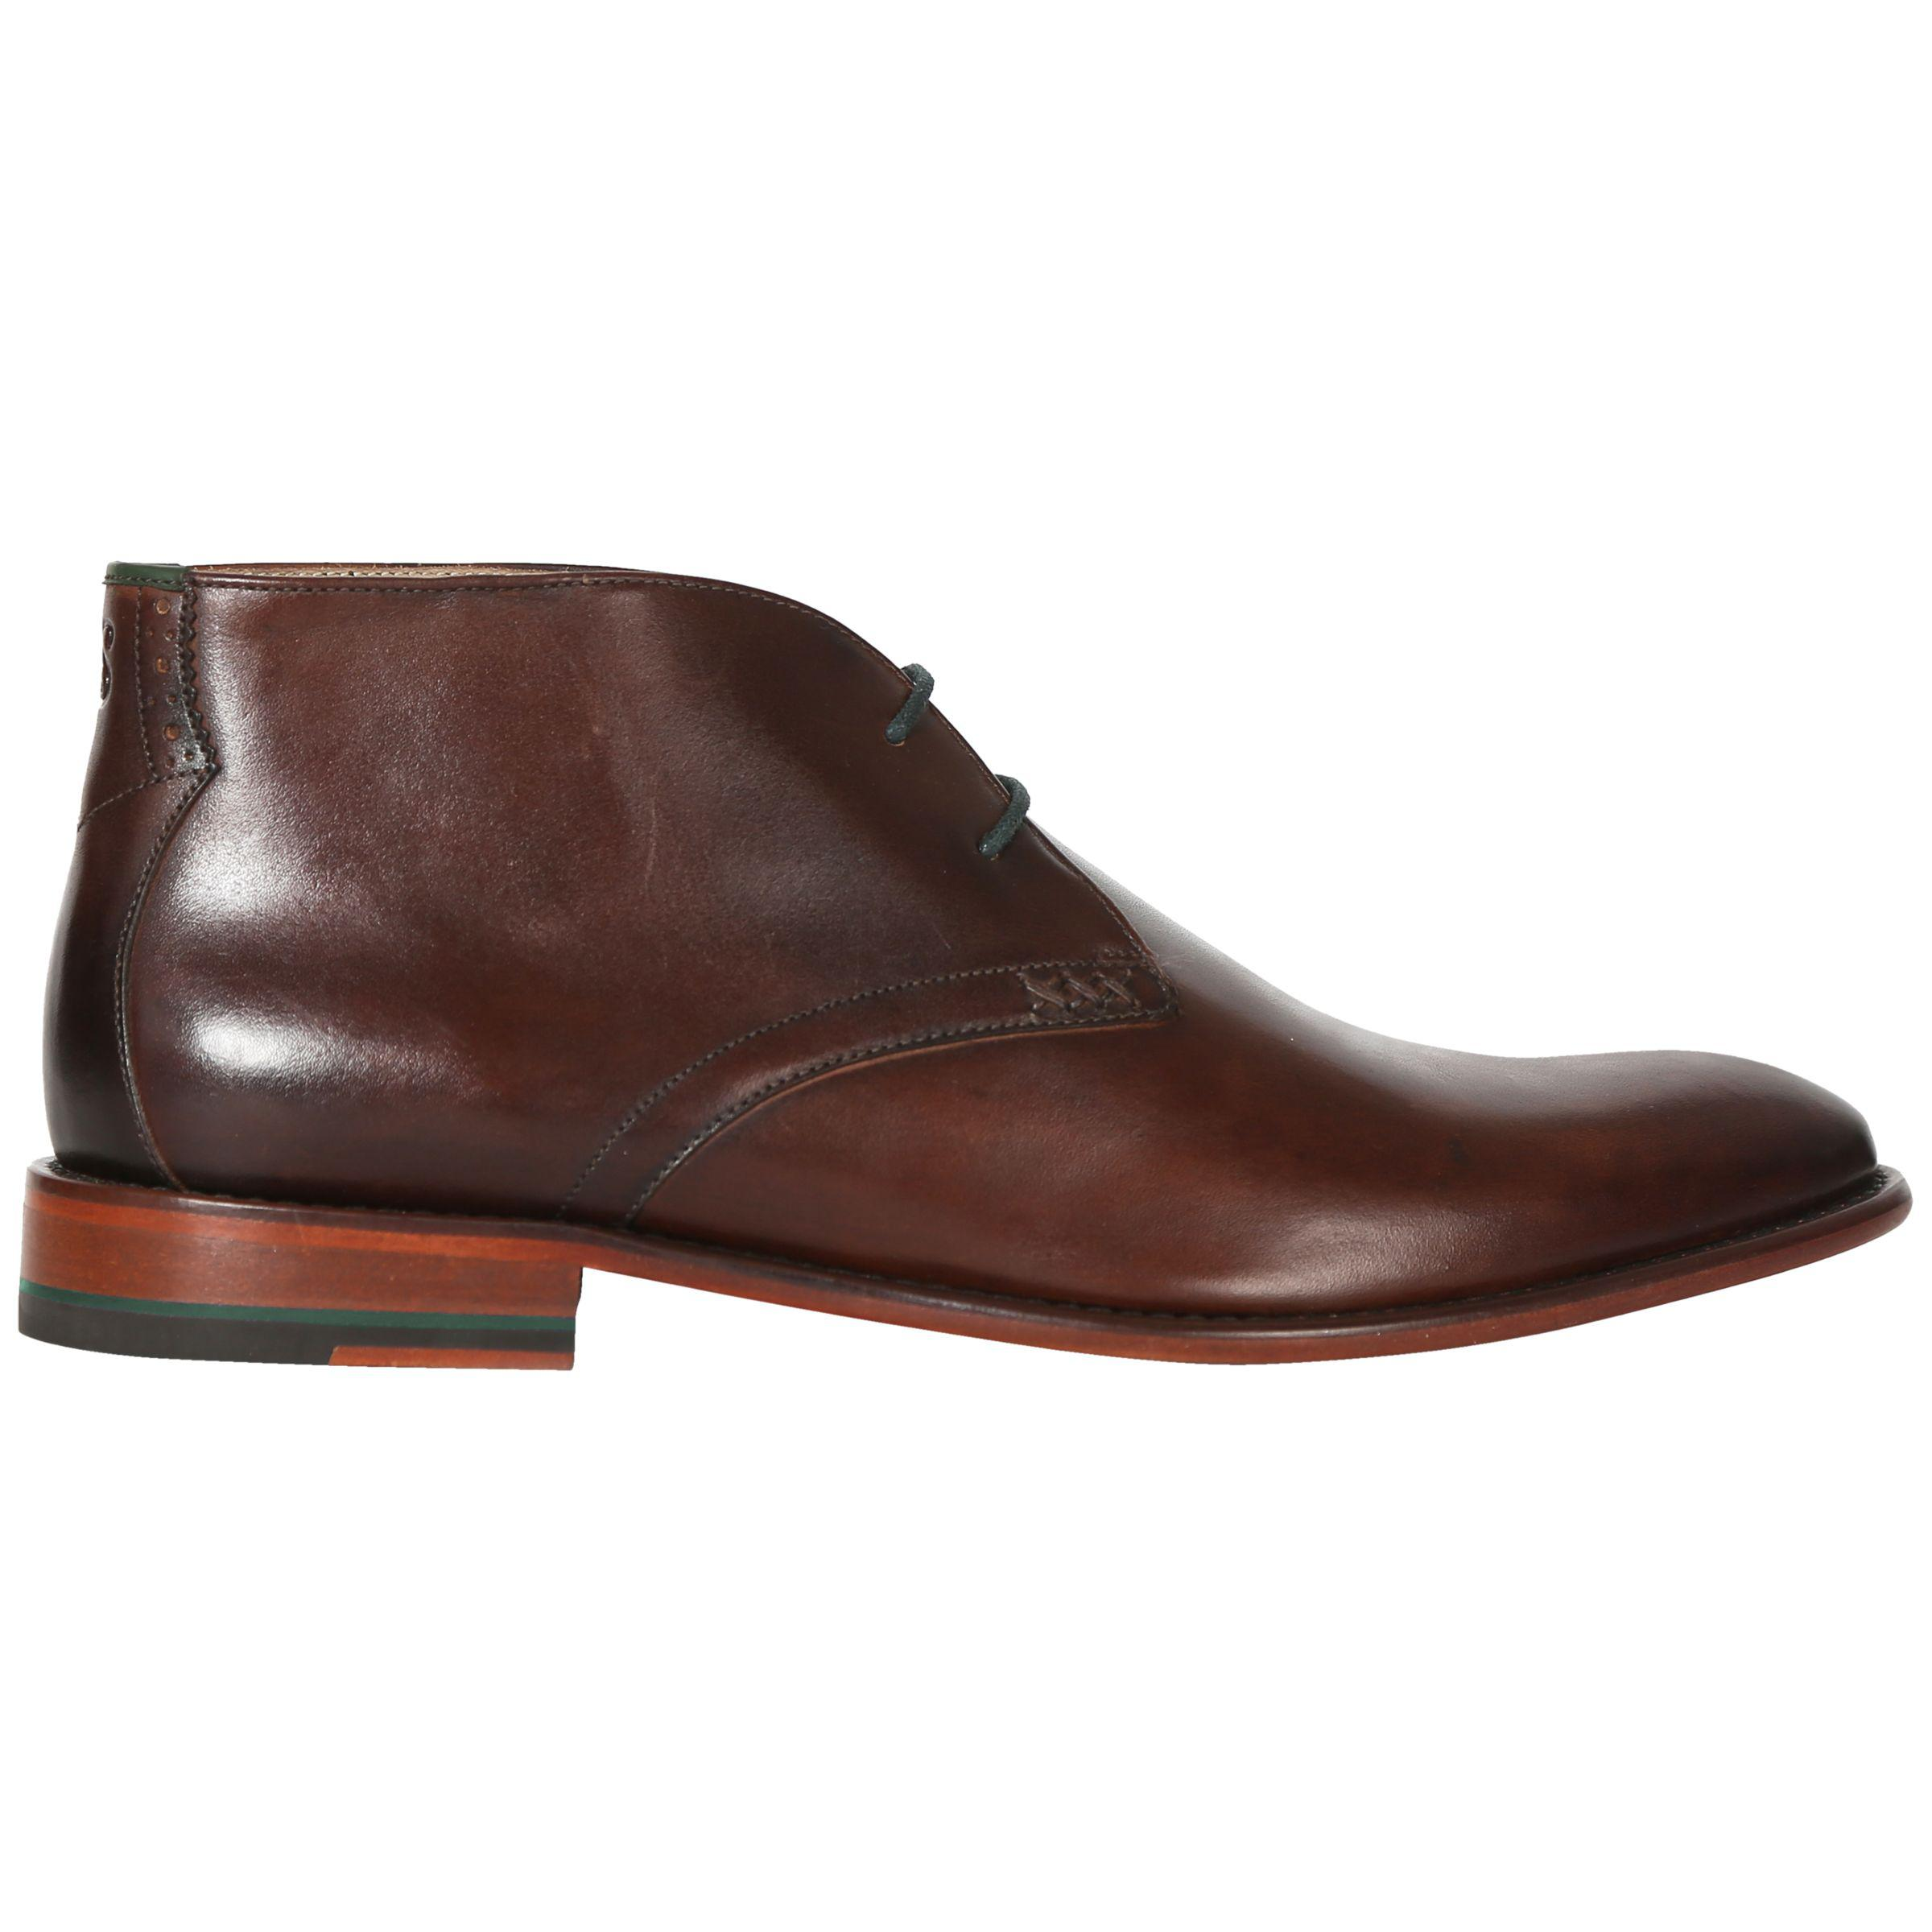 bf503420fb1 Oliver Sweeney Brown Waddell Derby Ankle Boots for men